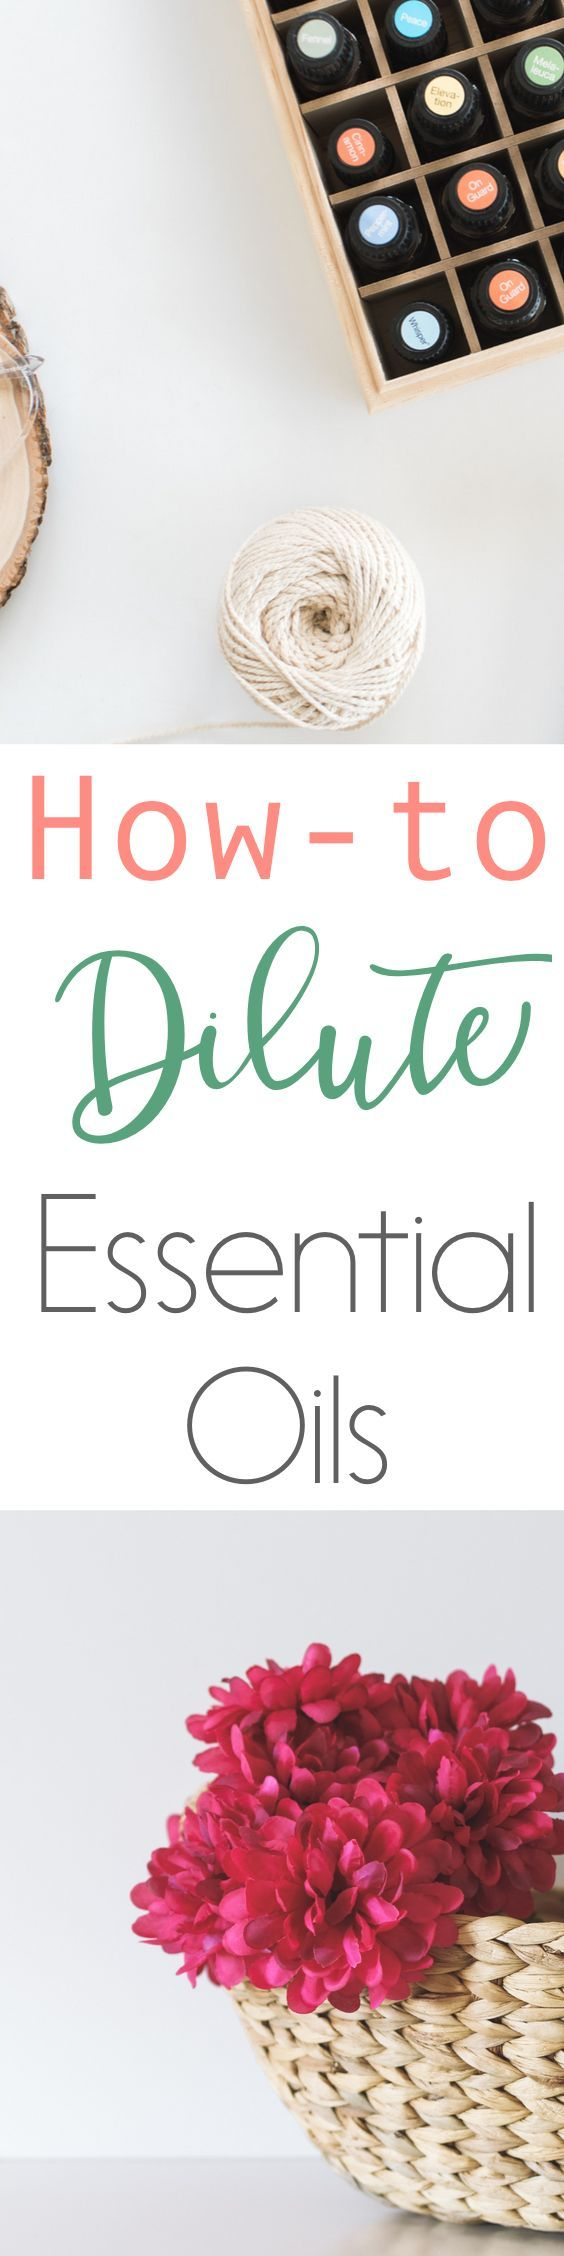 One of the top essential oil questions I receive is how to dilute essential oils. Essential oils are a powerful natural solution for families, but must be used safely. That is why it's so important to discuss how to dilute essential oils properly. Read how to dilute essential oils or pin for later! // www.simplyreeni.com